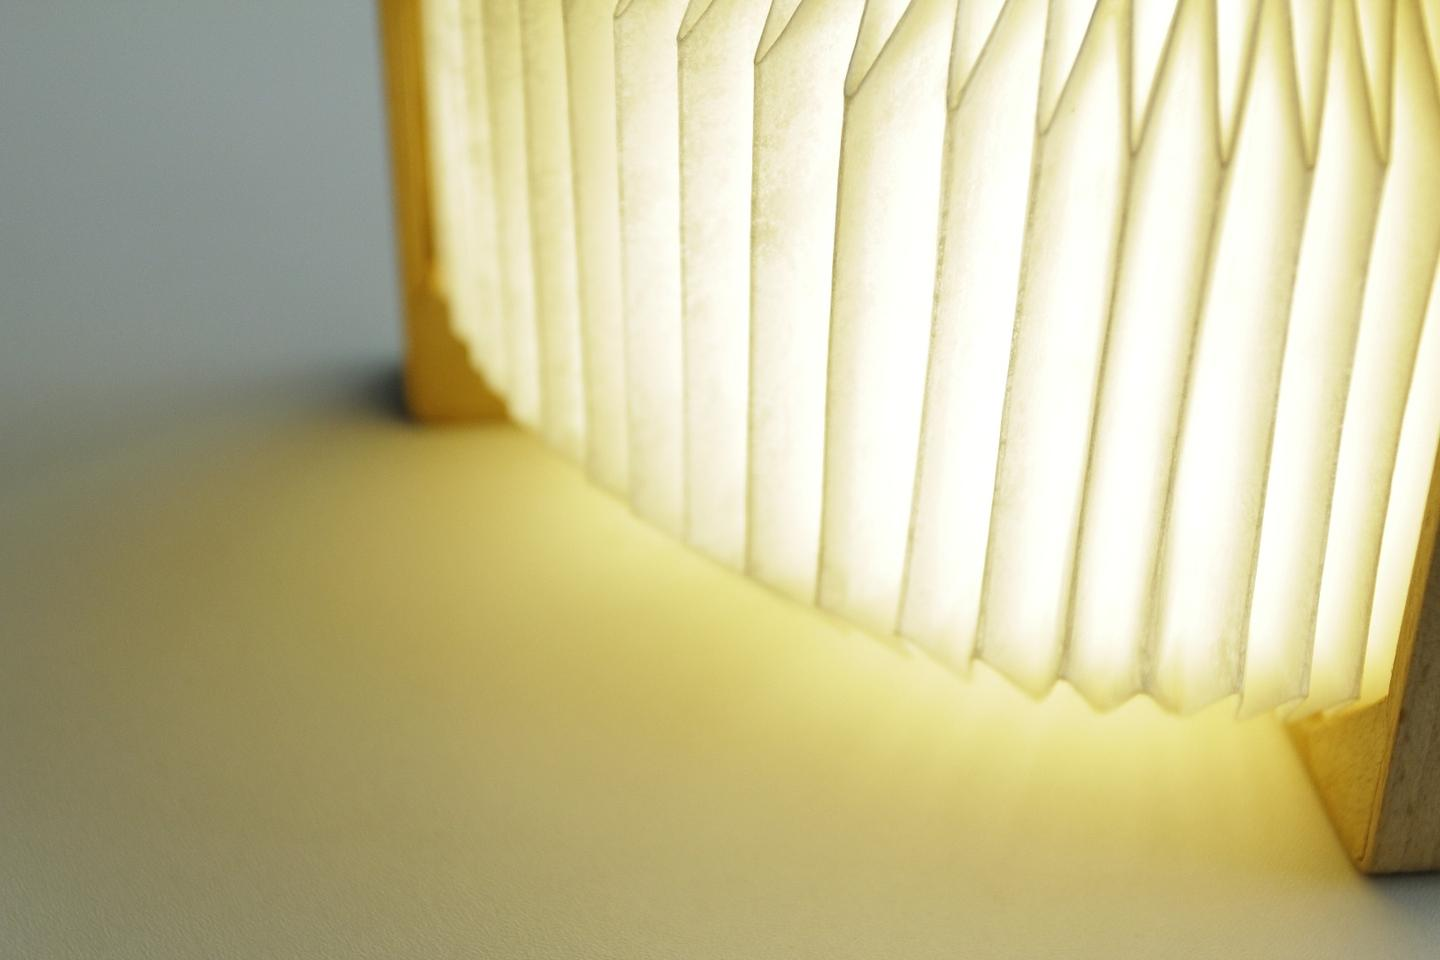 Orilamp uses heat-resistant novex material made by DuPont